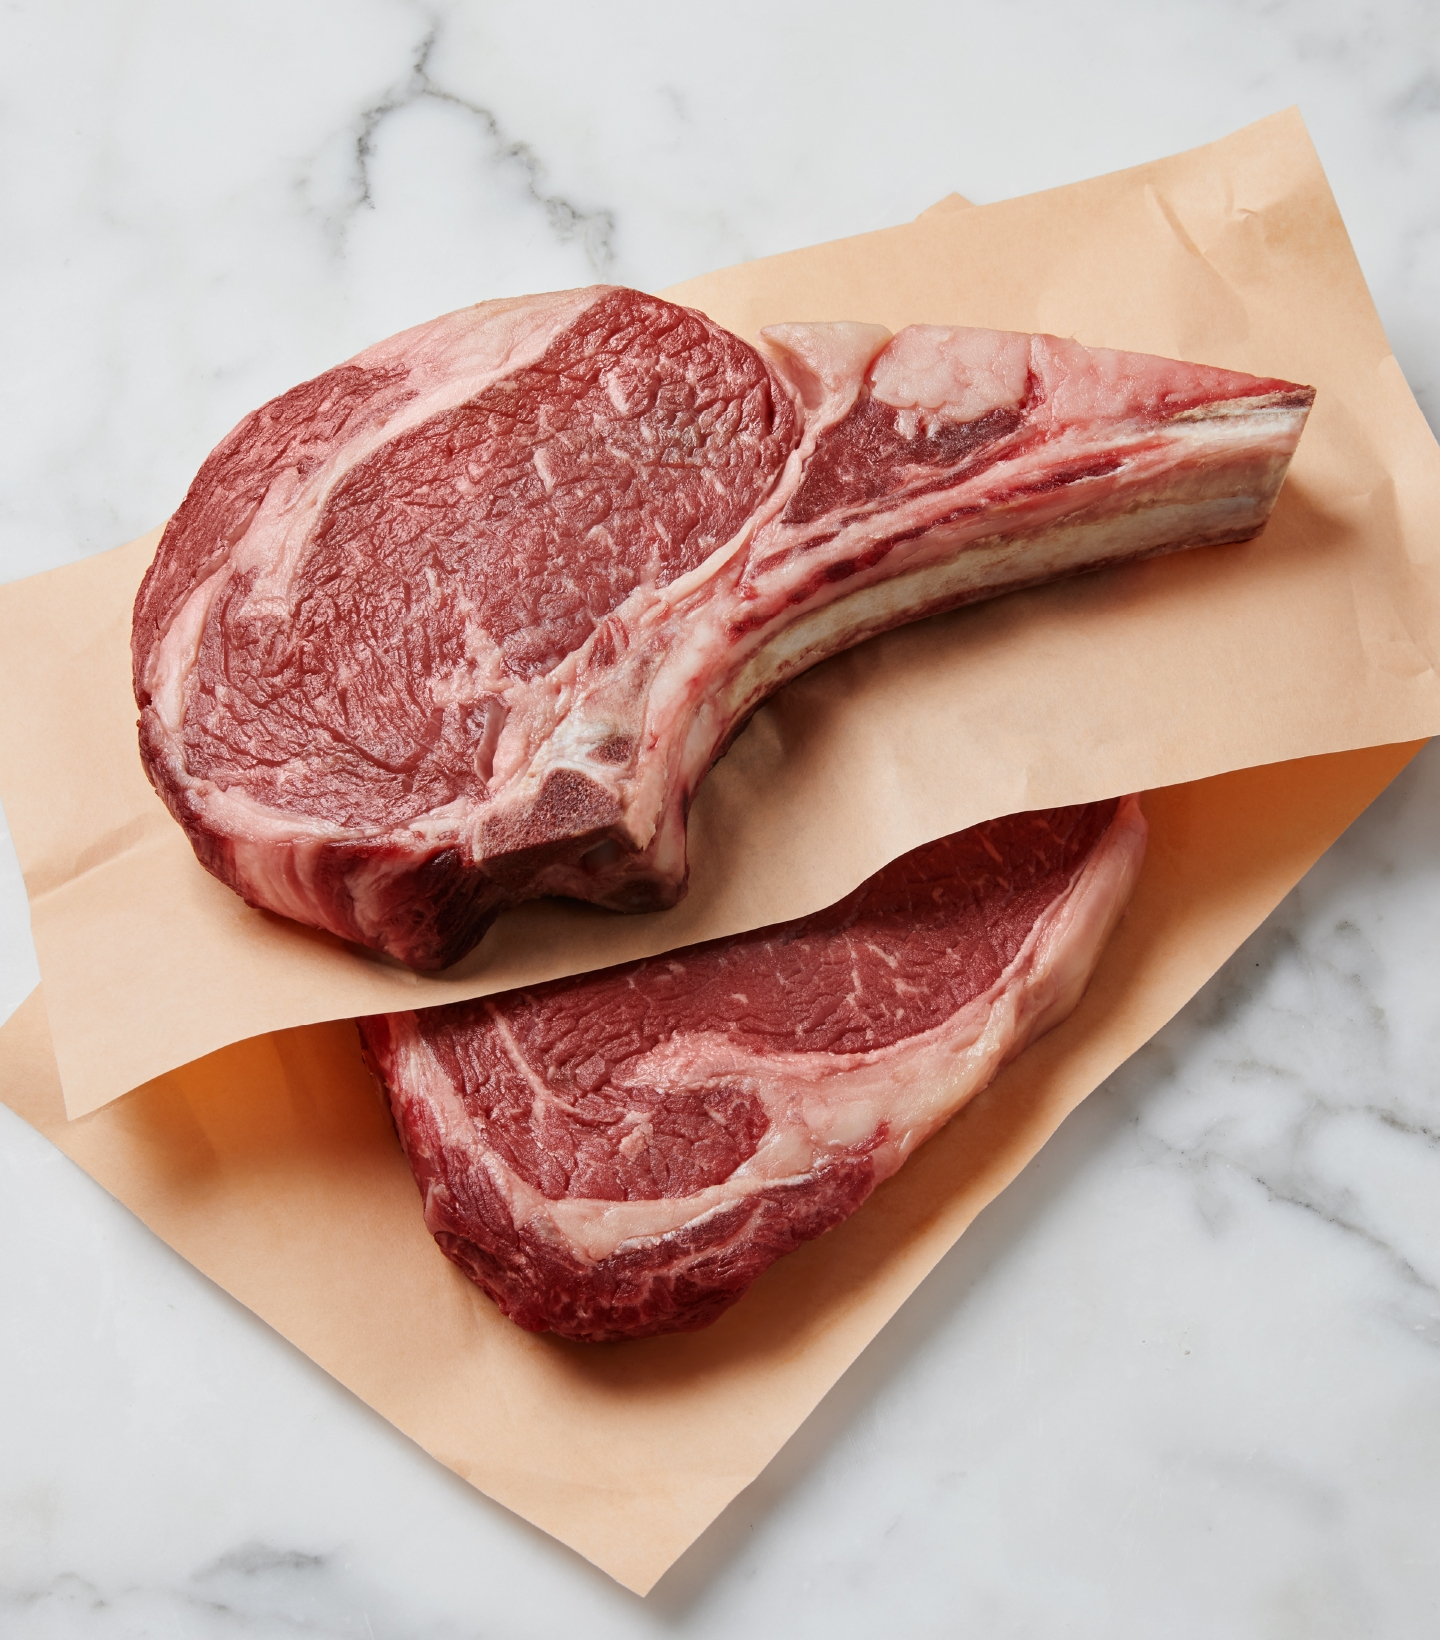 Two marbled raw beef ribeye steaks on a white marble countertop